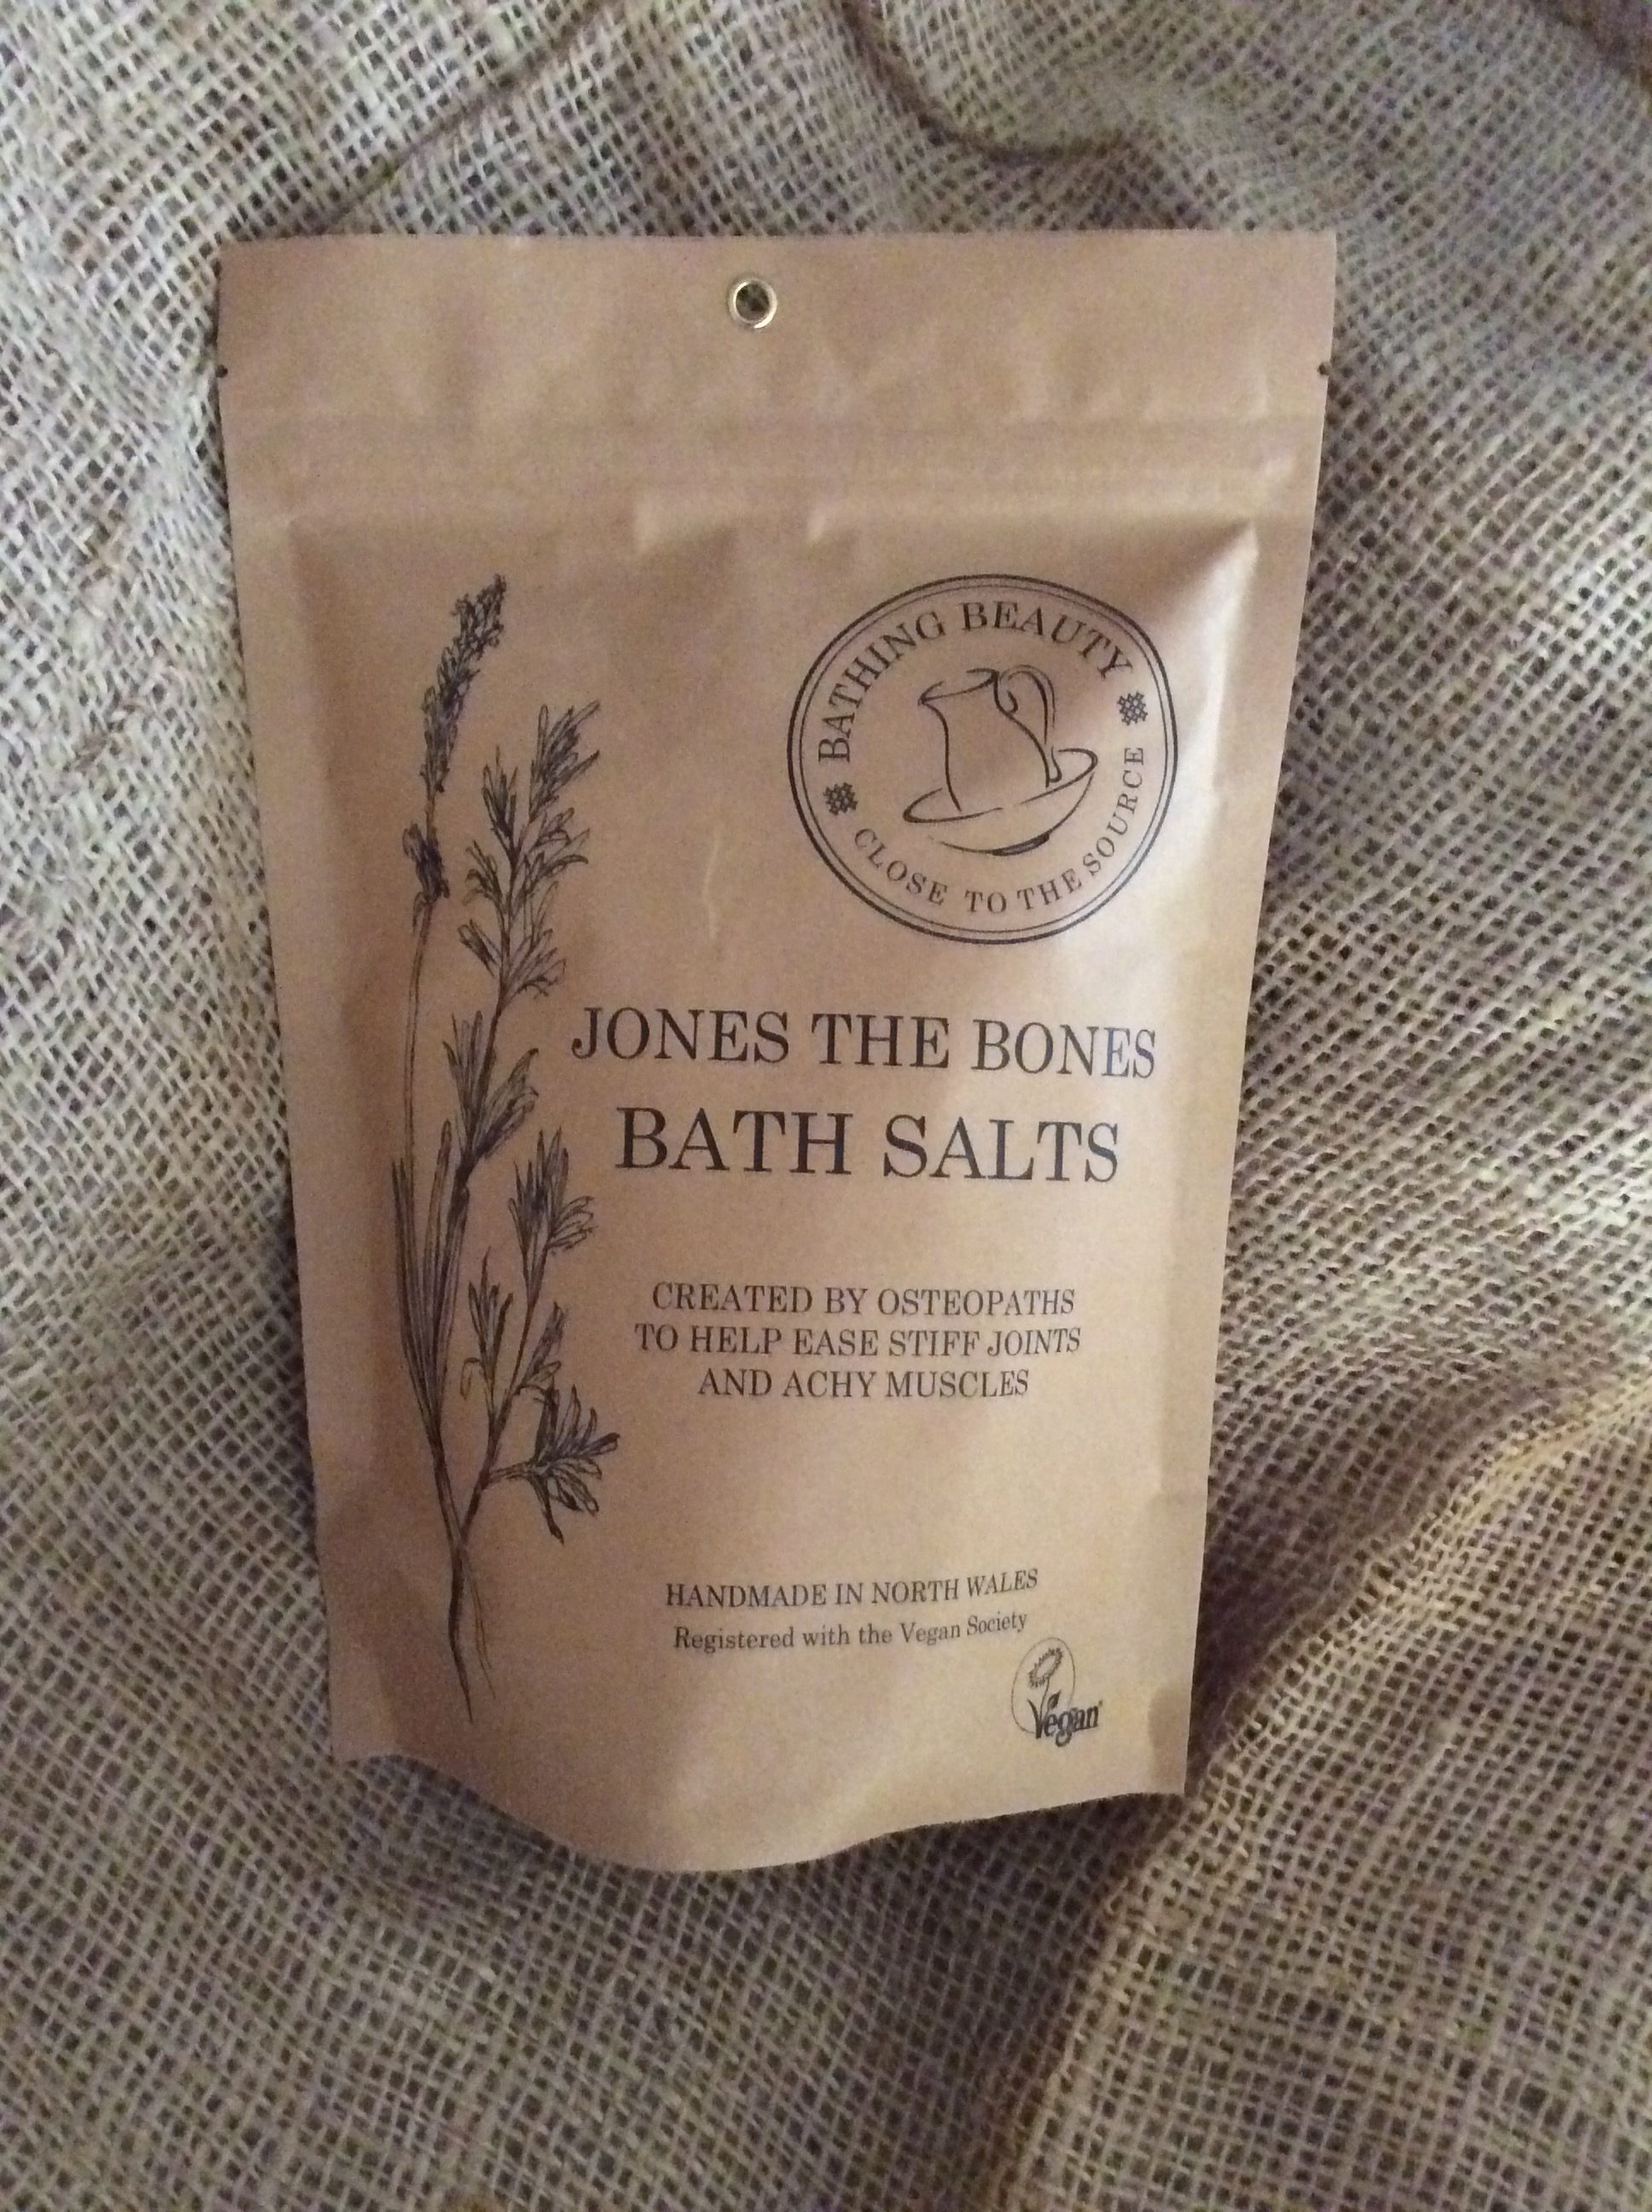 Jones The Bones Bath Salts.